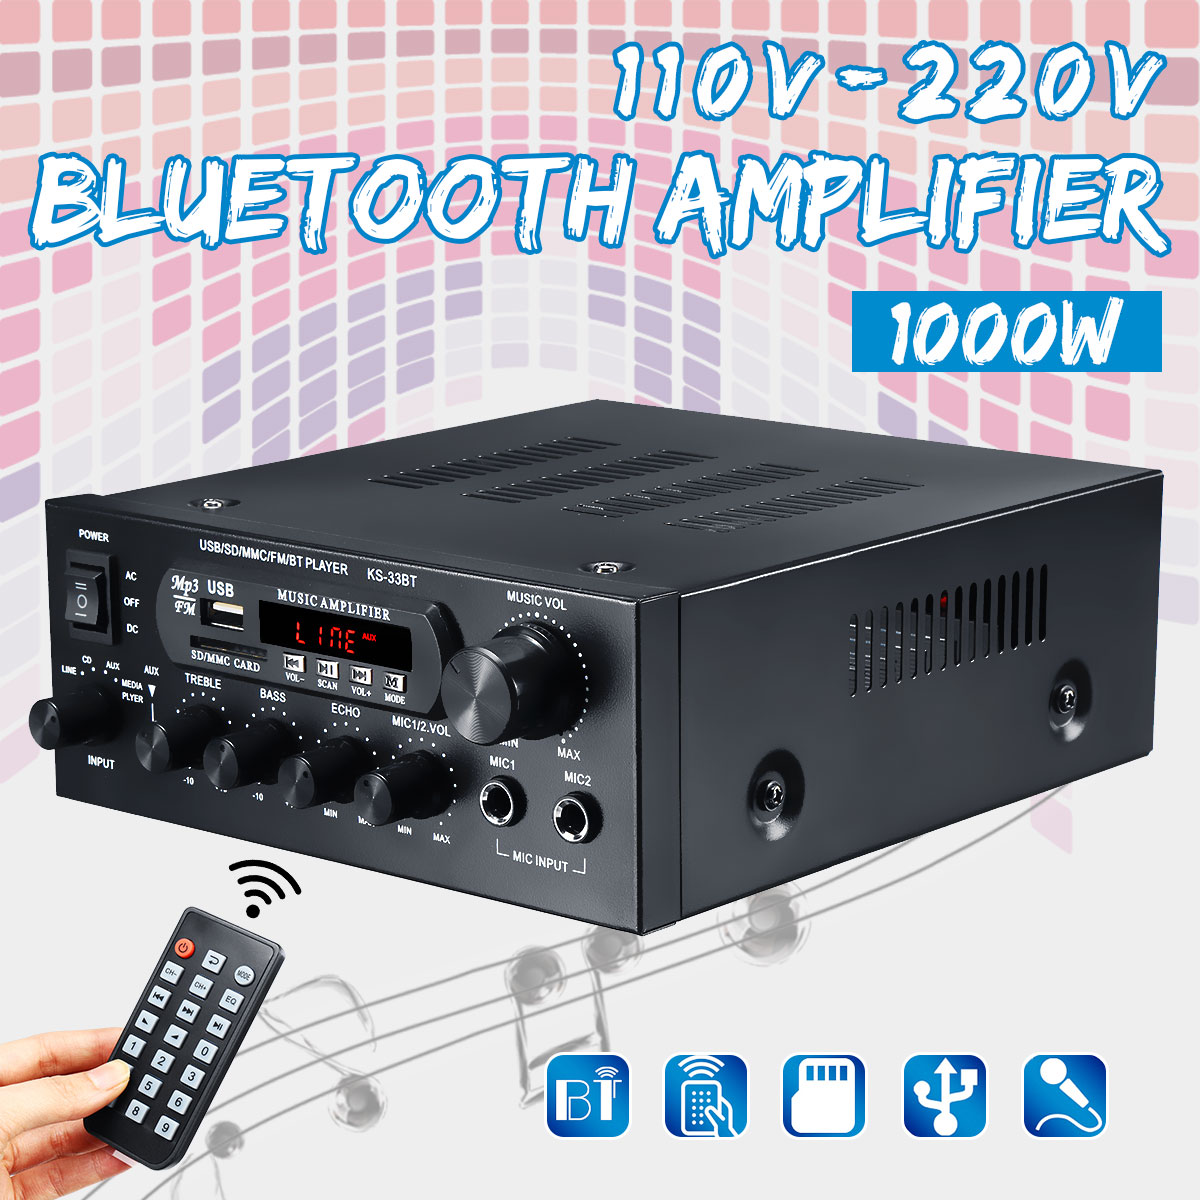 110V ~230V 1000W Home Amplifiers Audio Hifi Bass Audio Power Amplifier Home Theater Amplifier For Subwoofer Speakers